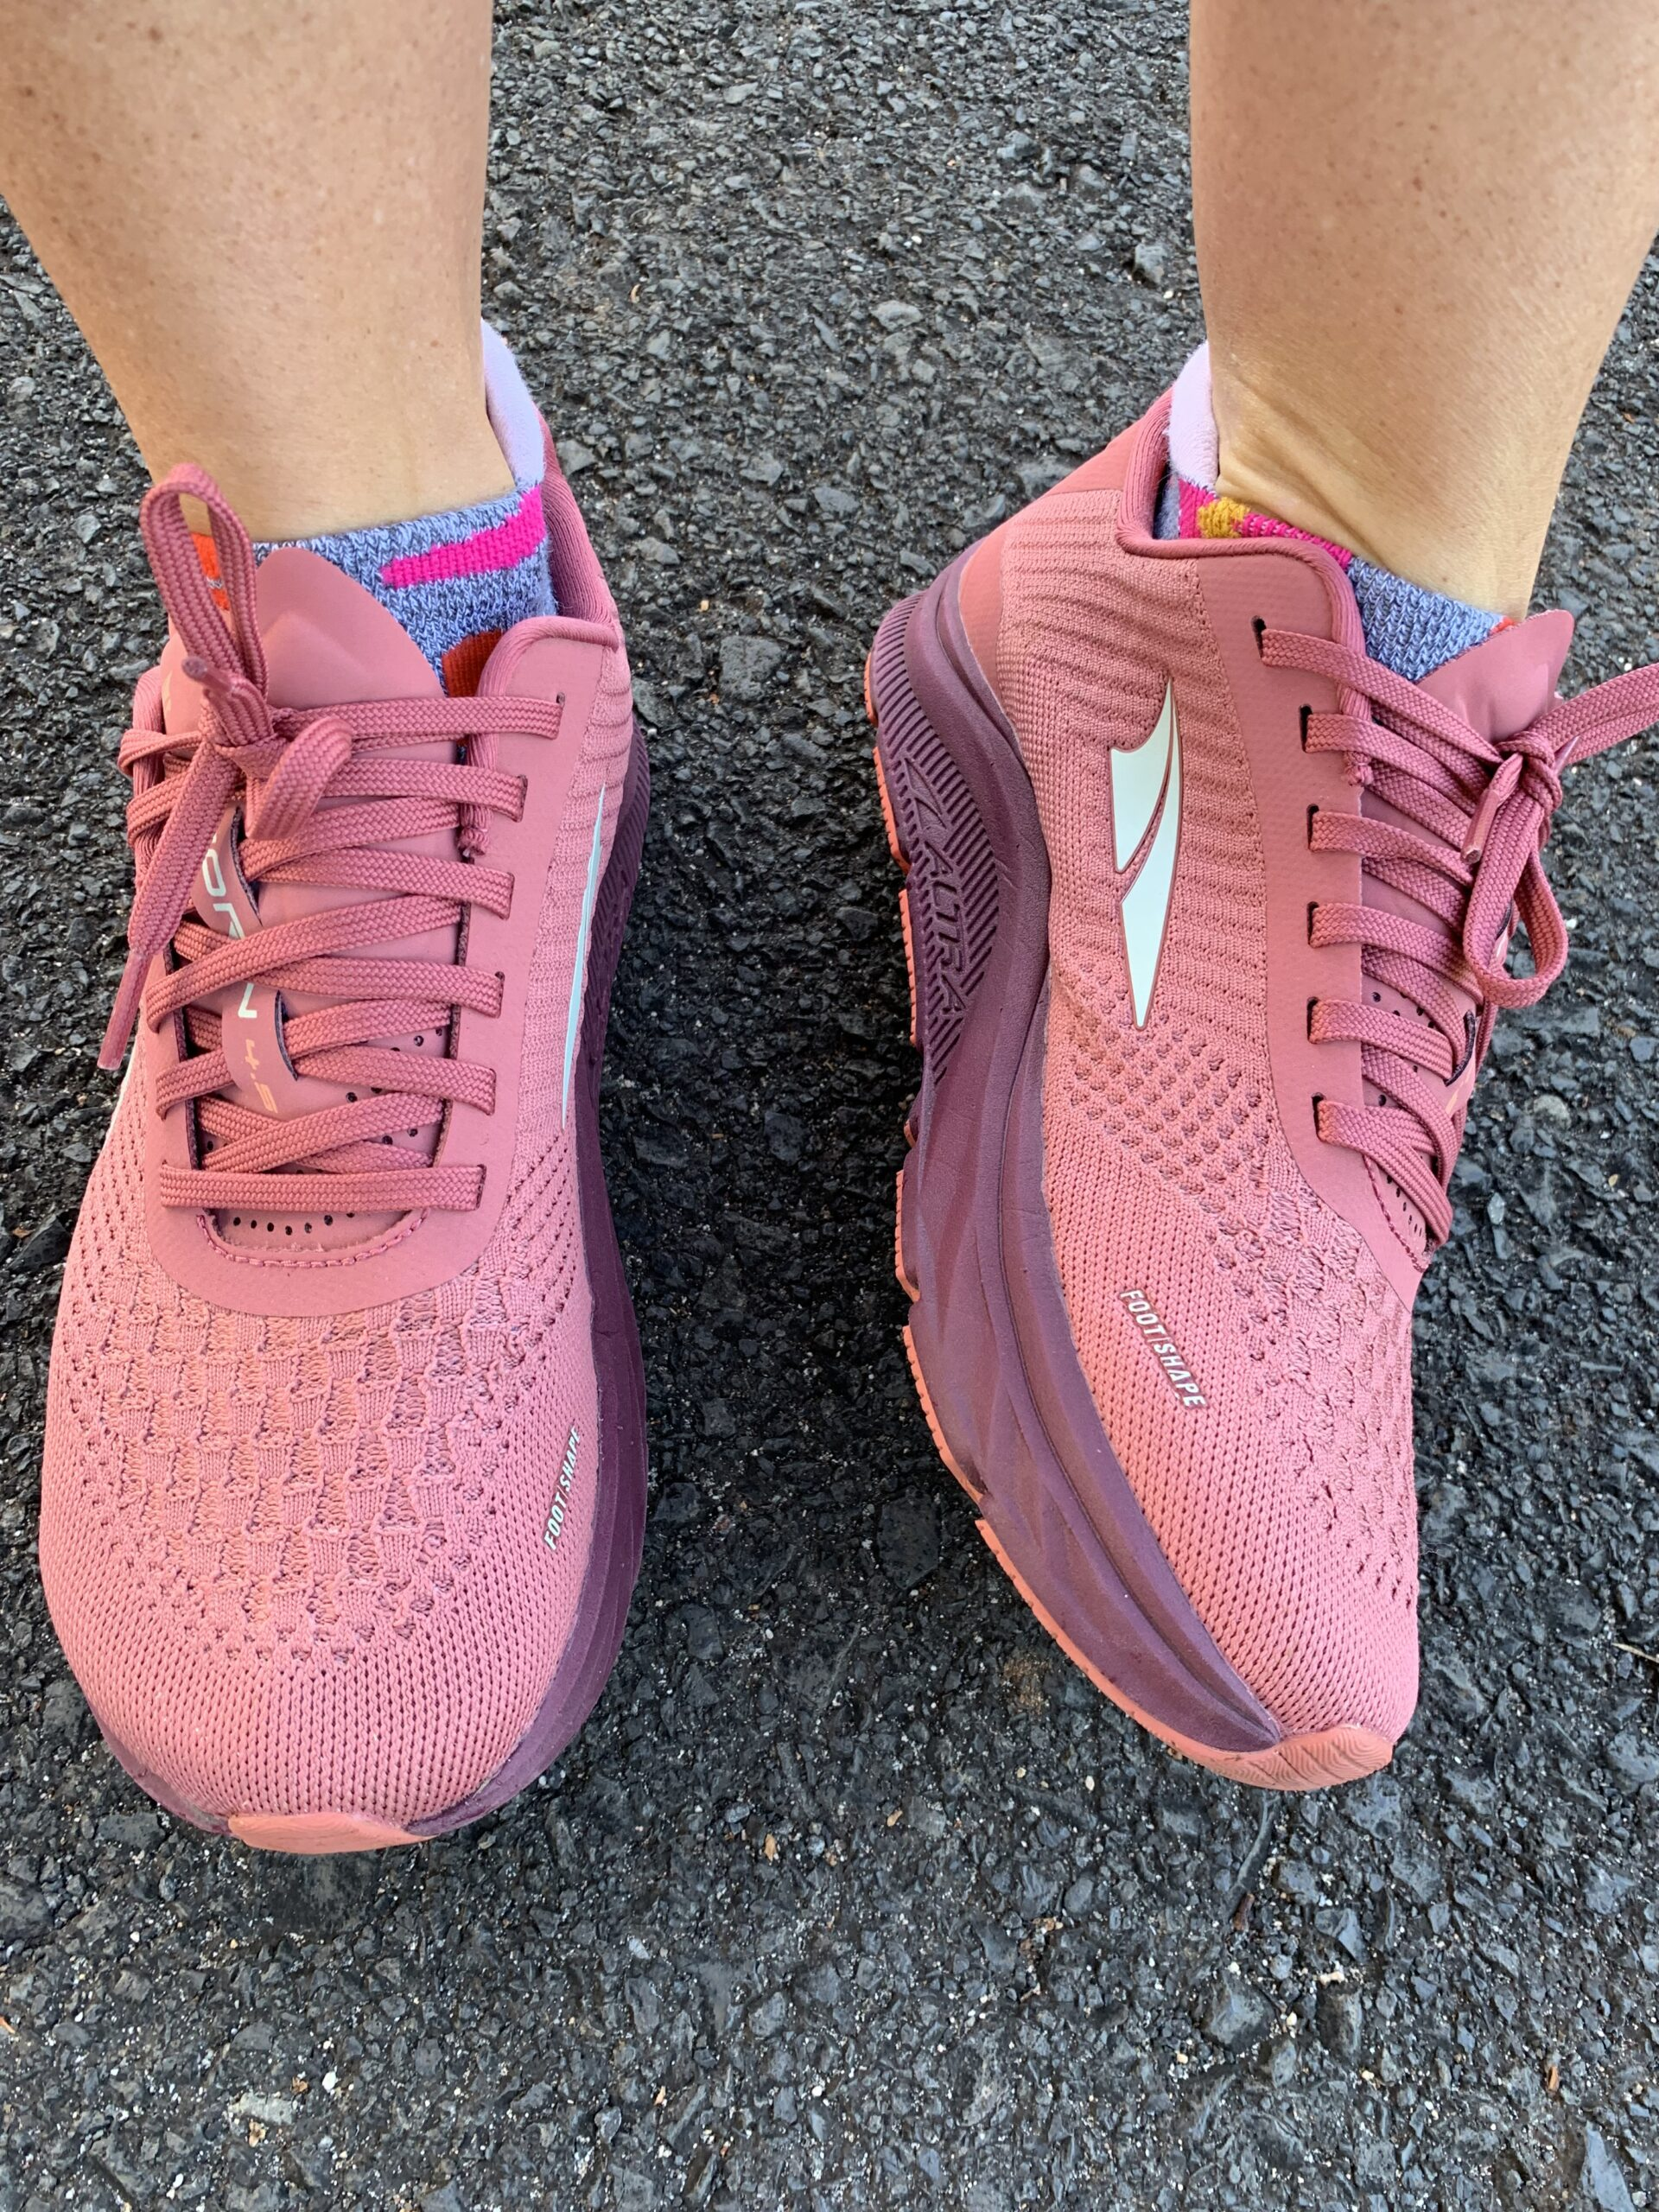 My Thoughts On Altra Running Shoes - Are you considering a pair of Altra running shoes? Here are my honest thoughts!   Altra Running Shoes Women - Altra running -Altra sneakers - Altra footwear - Zero drop sneakers